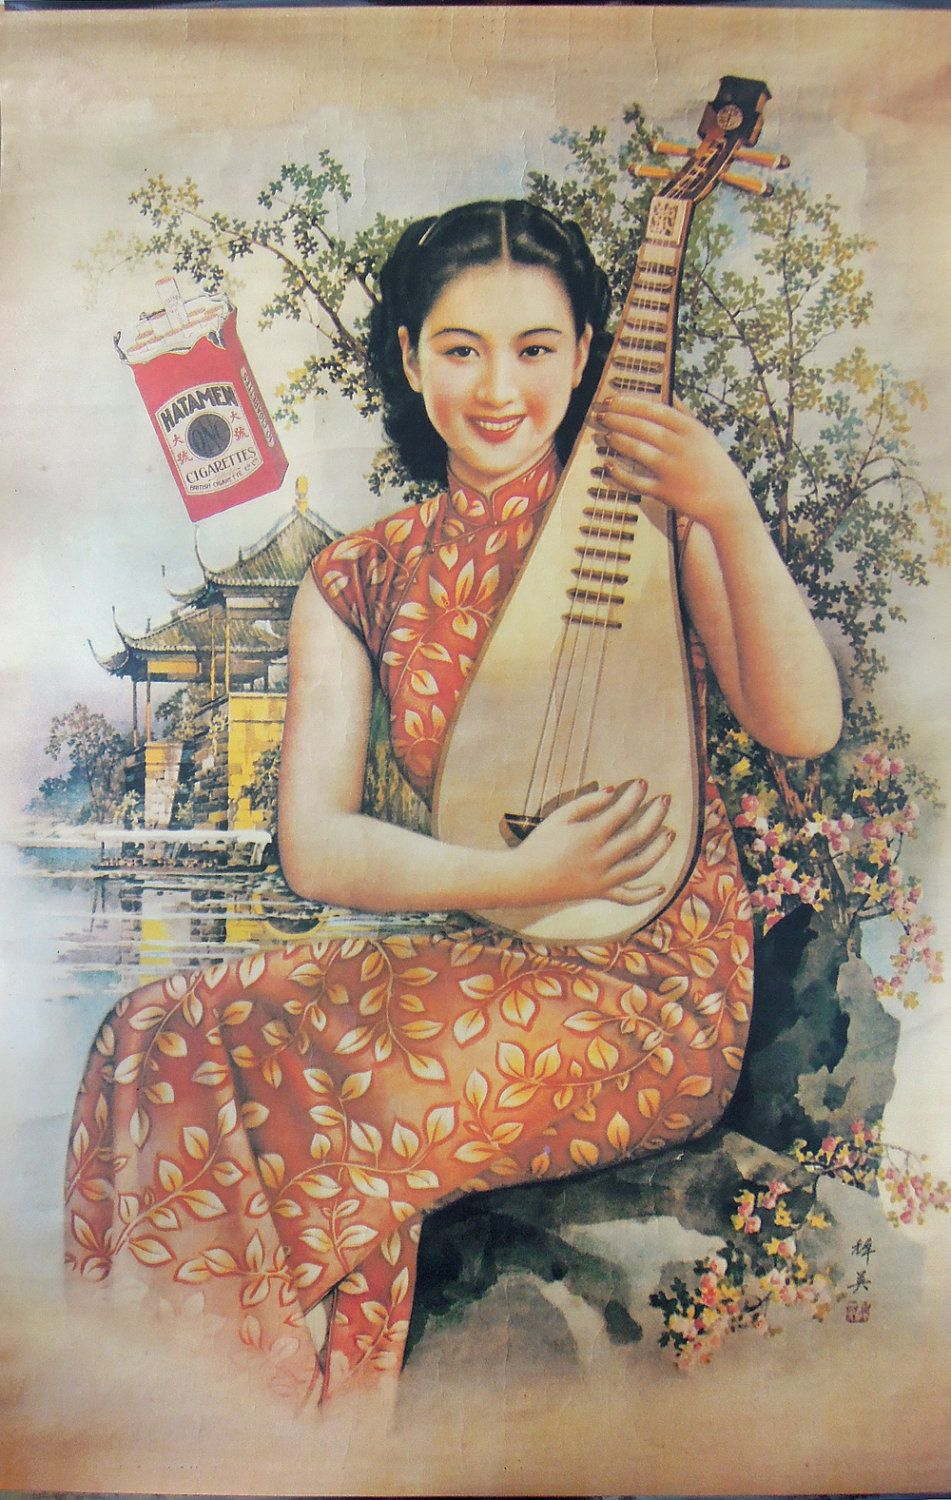 Vintage Chinese Calendar : Vintage shanghai girl quot hatamen cigarette advertising